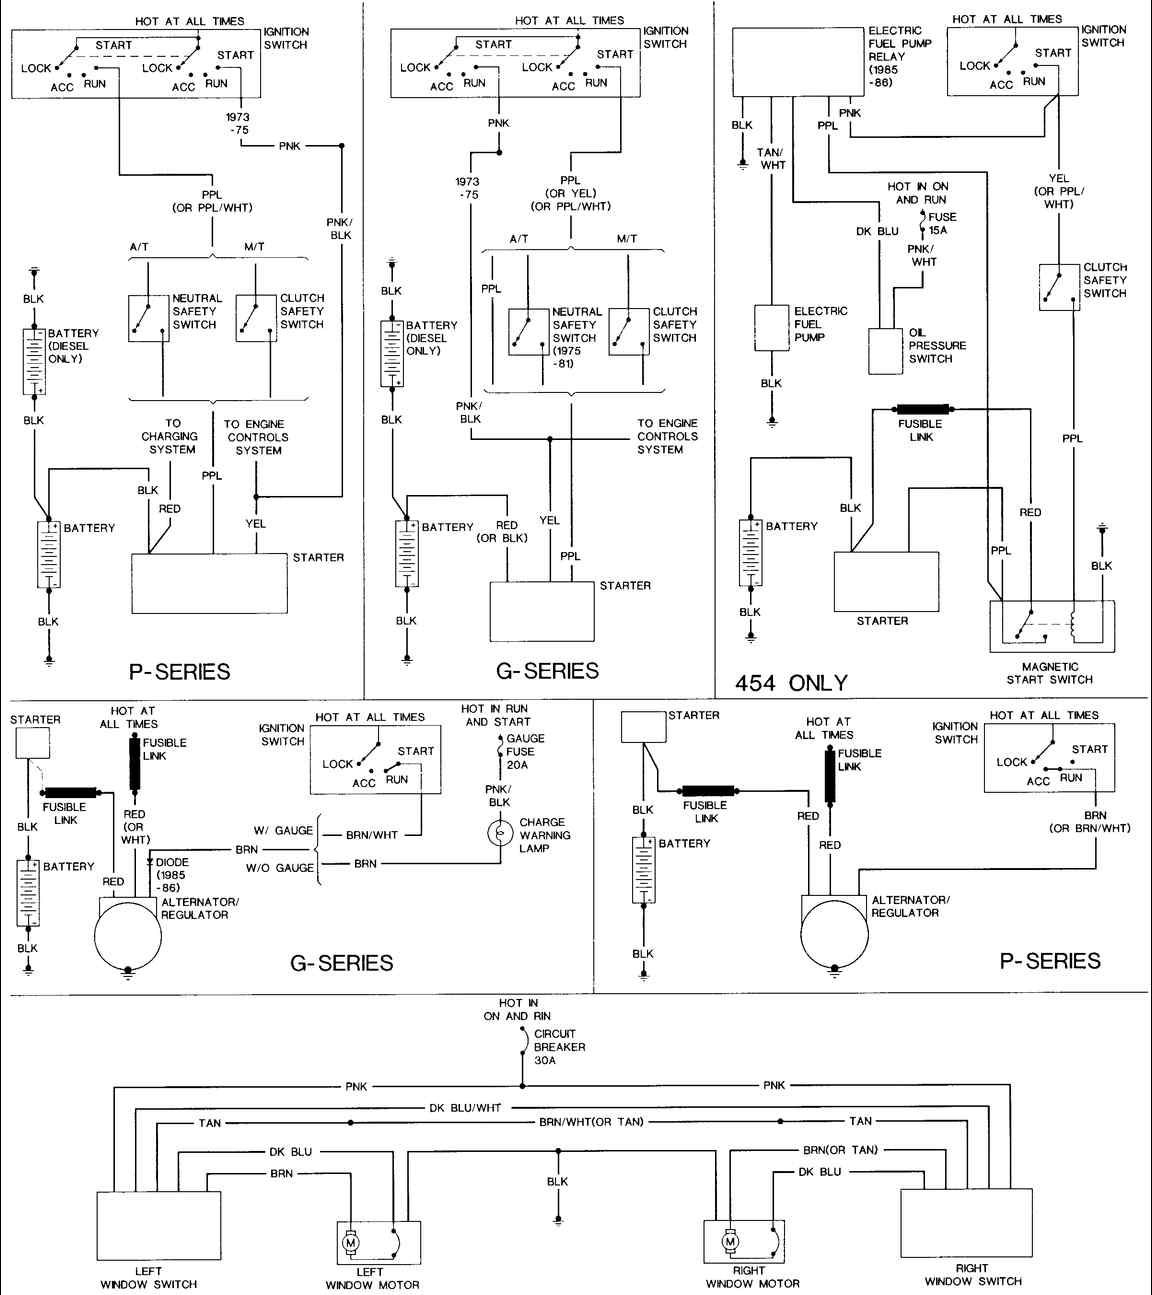 medium resolution of chevy g20 wiring diagram wiring diagram mega 1995 chevy g20 stereo wiring diagram chevy g20 wiring diagram